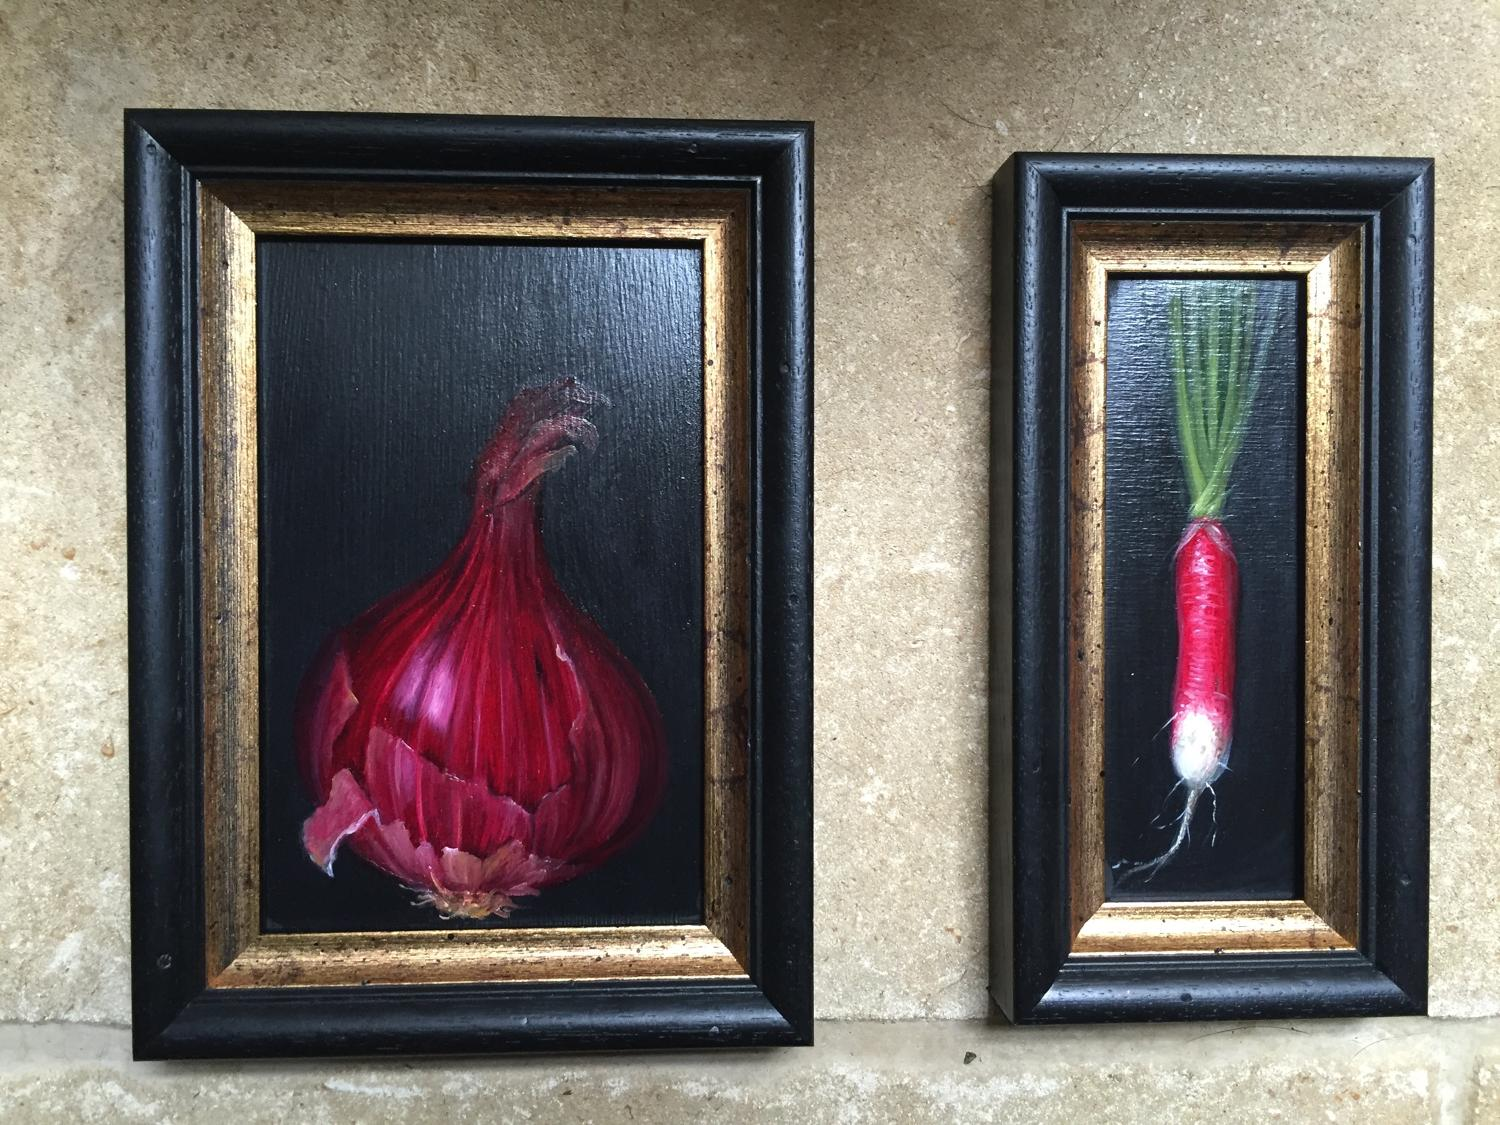 Painting of red onion and raddish